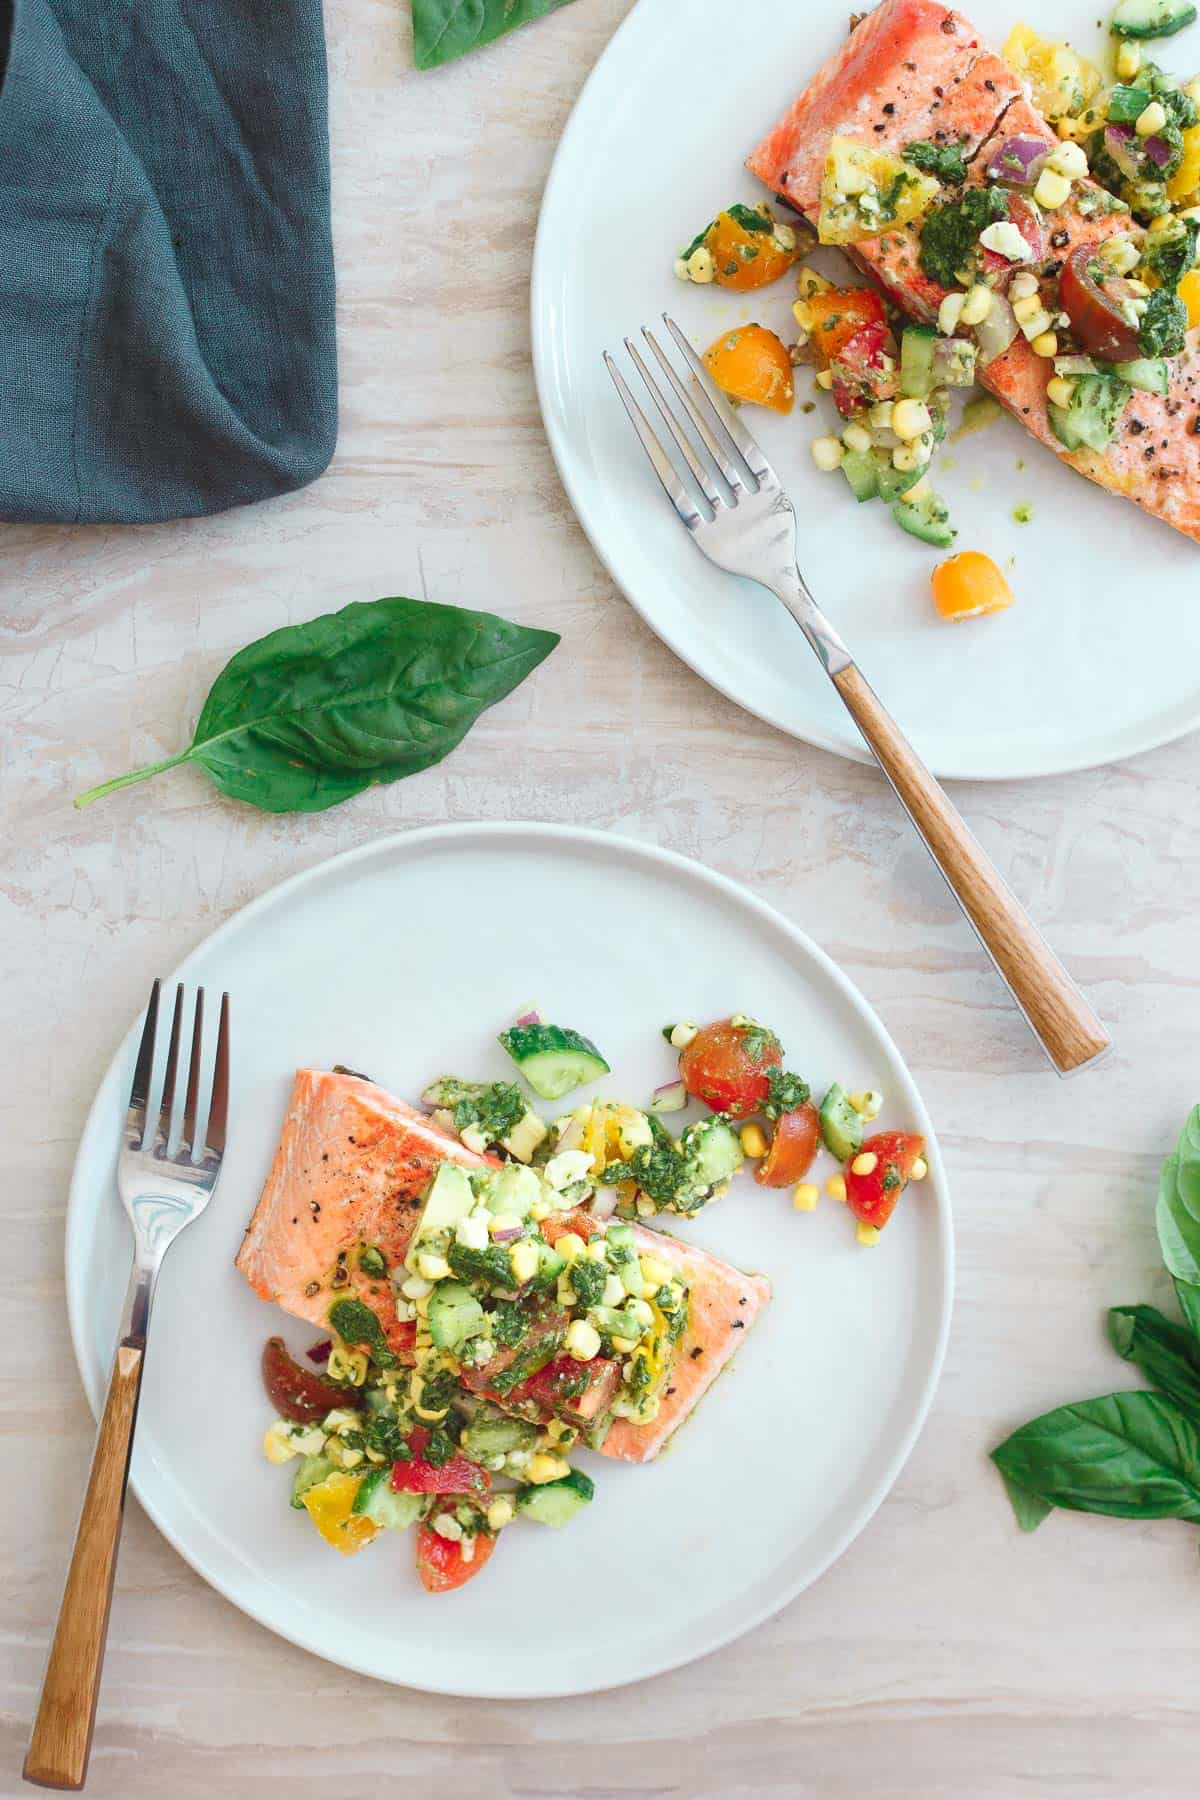 This seared salmon with tomato corn salsa is a quick, easy and healthy summer meal.